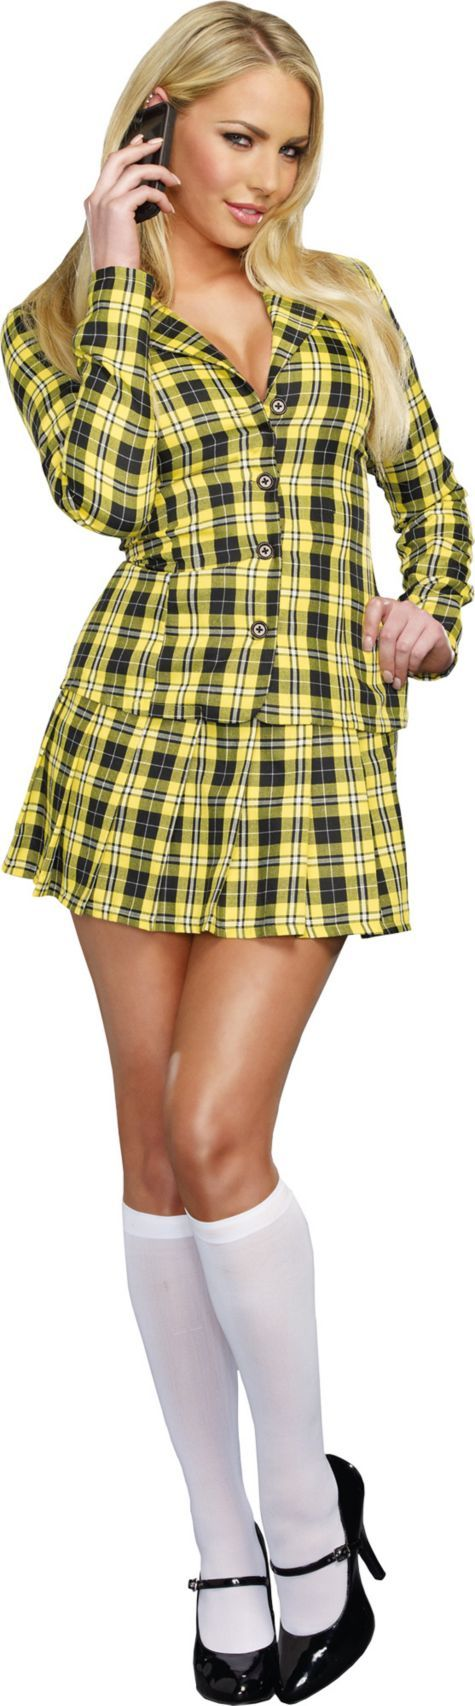 The 25+ best Cher clueless costume ideas on Pinterest | Clueless ...